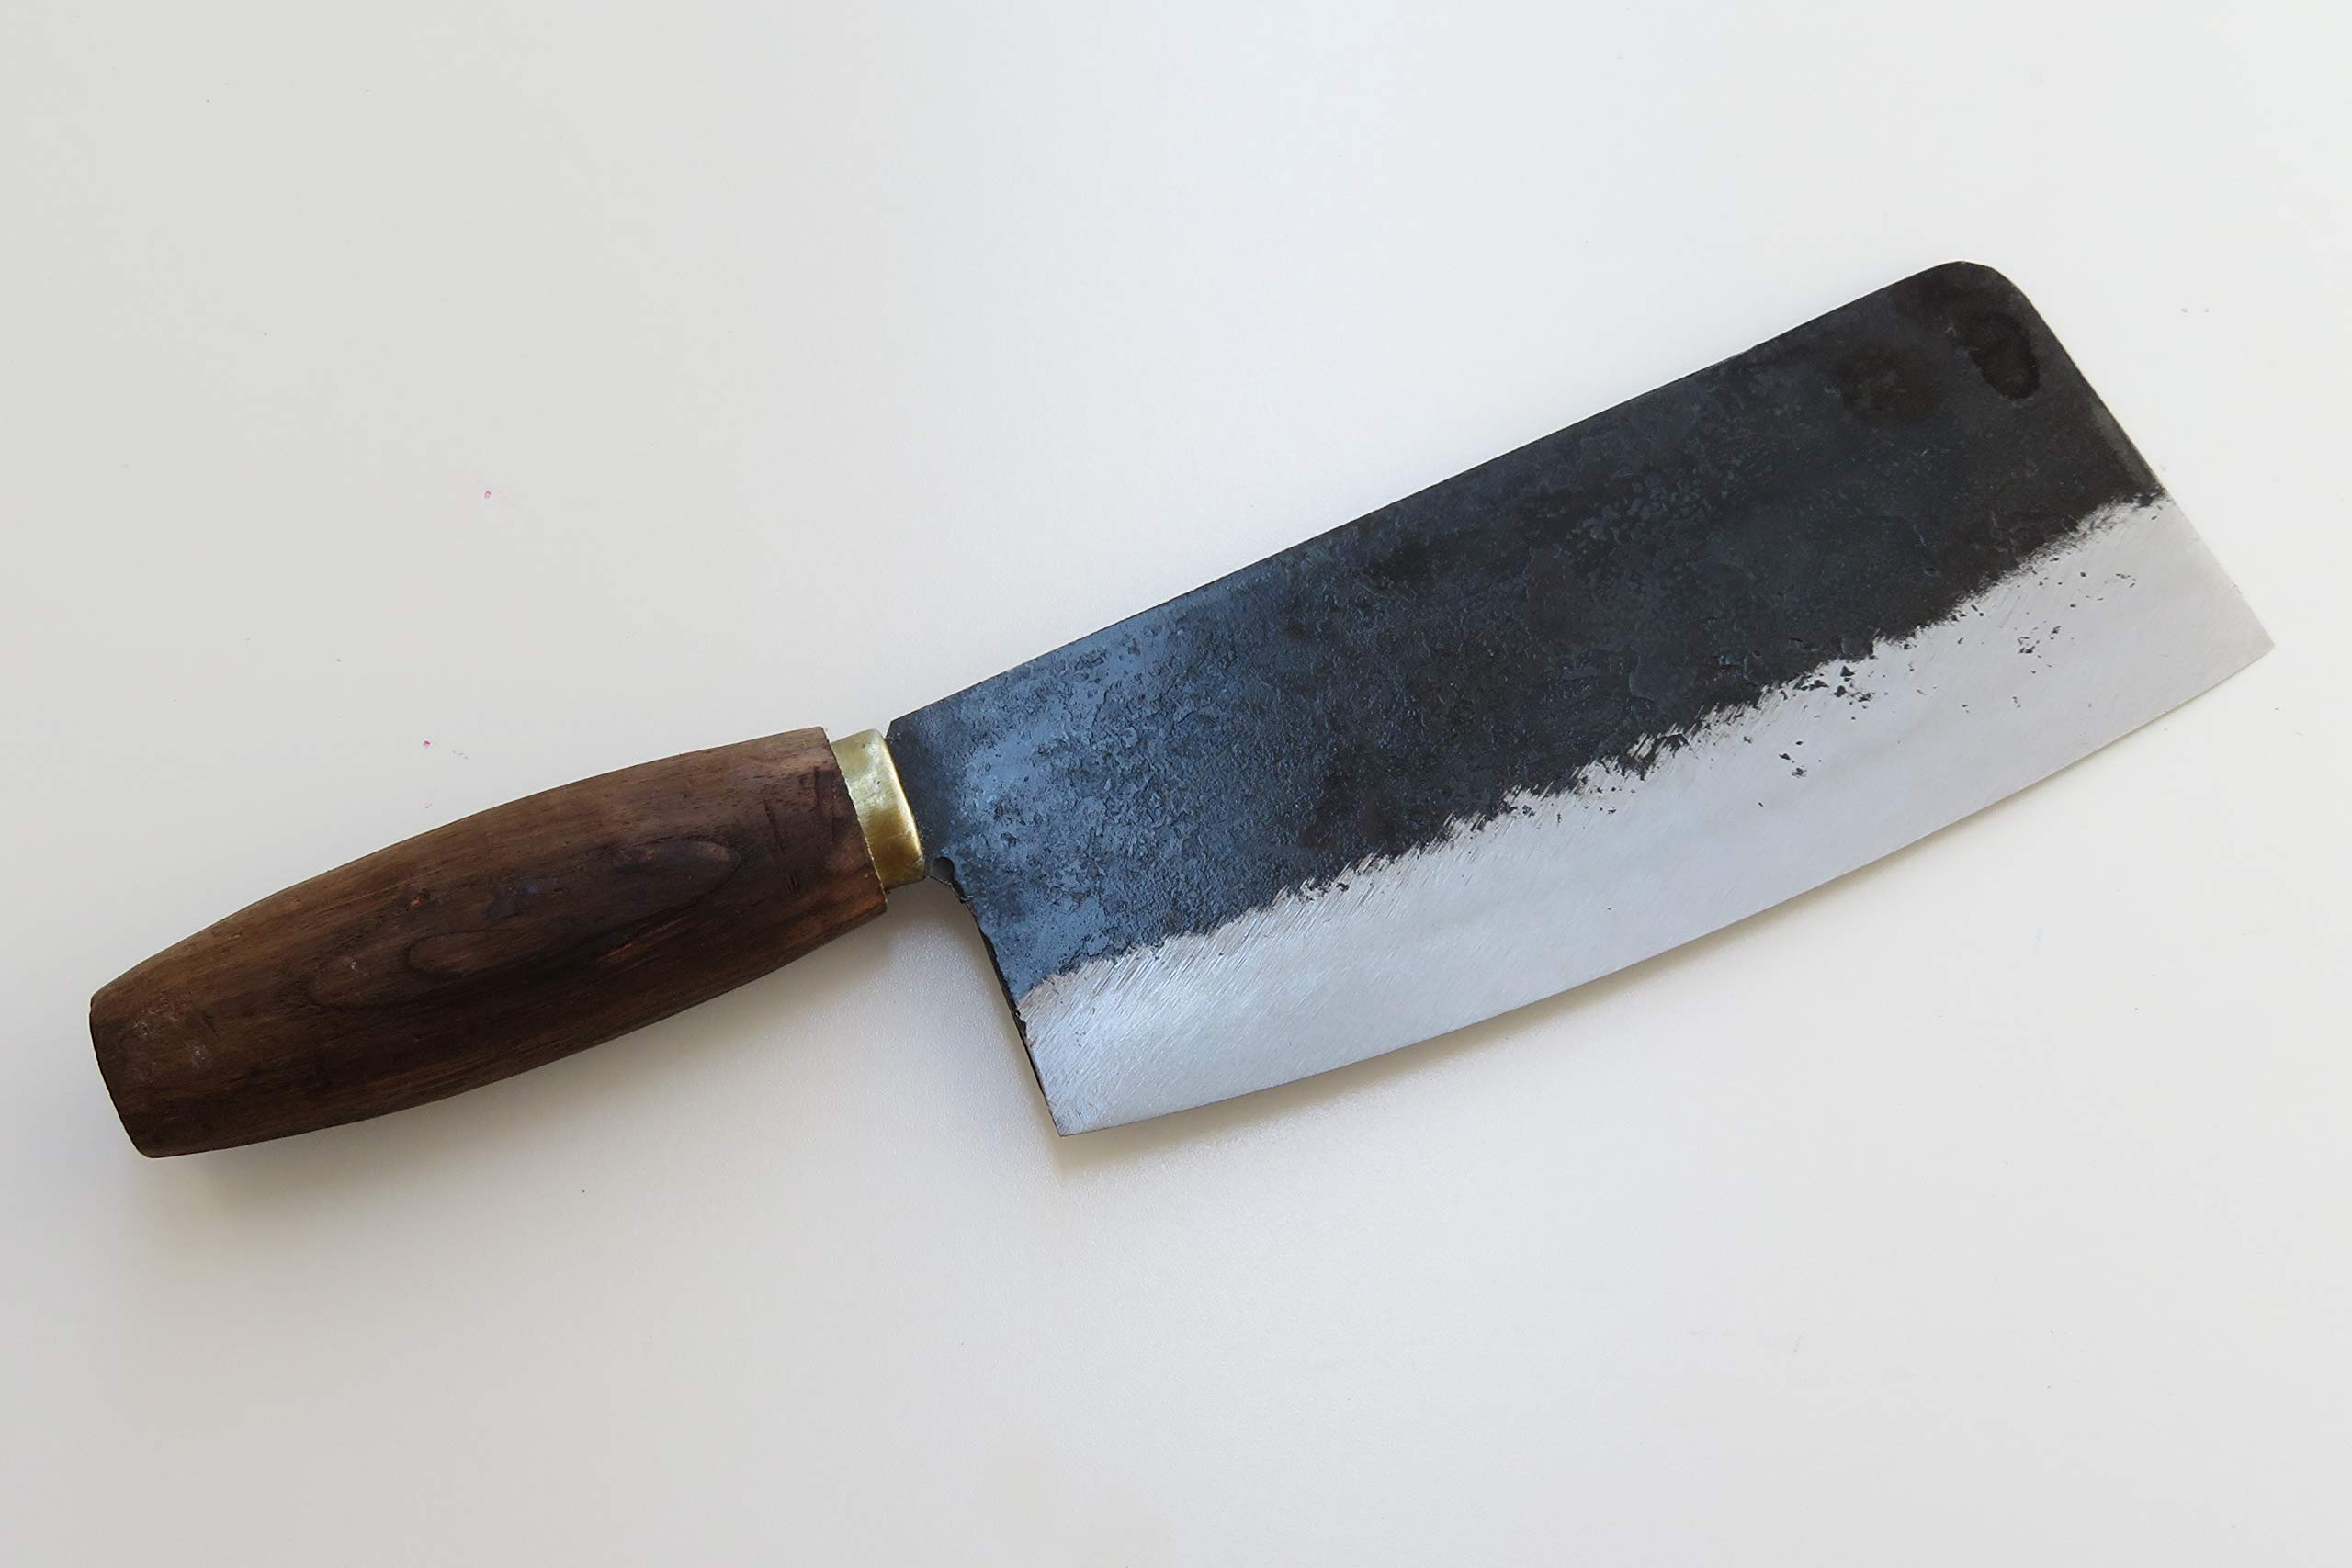 Crude - Premium Chinese Cleaver Vegetable Chef Knife, 8 inch Narrow Carbon Steel by Crude